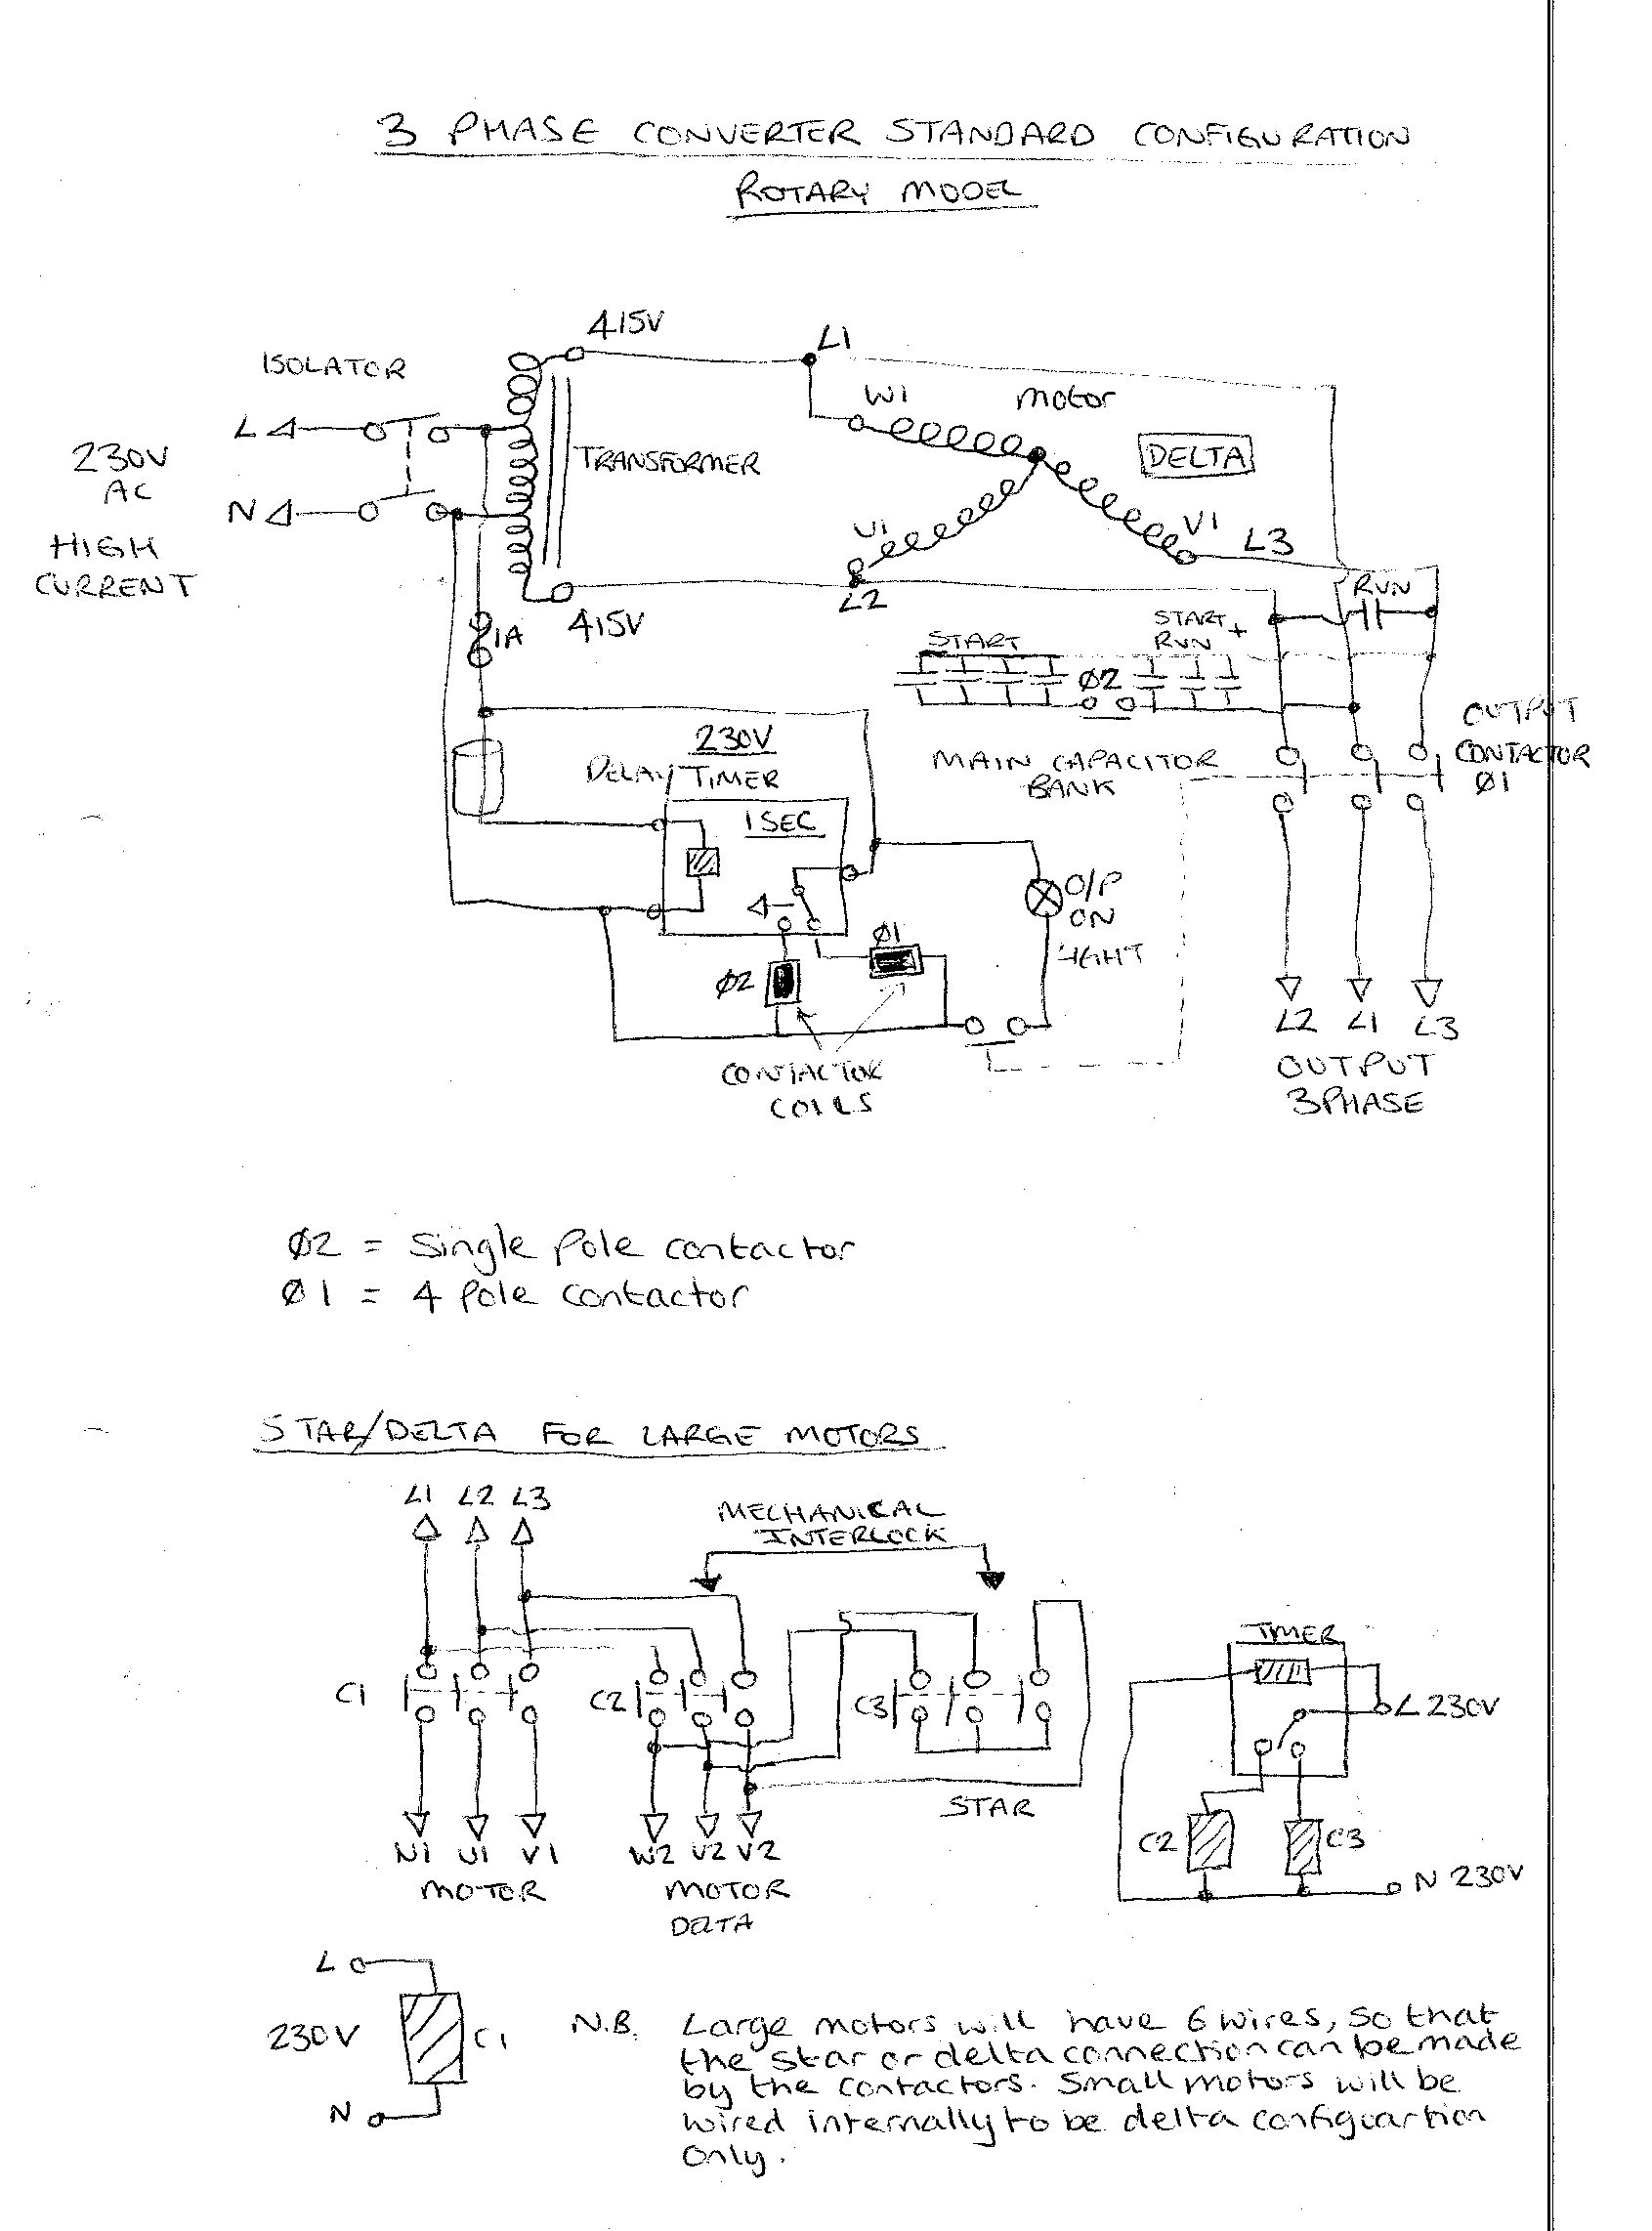 rotary phase converter wiring diagram marathon wiring diagram wiring diagram data diy rotary phase converter wiring diagram marathon wiring diagram wiring